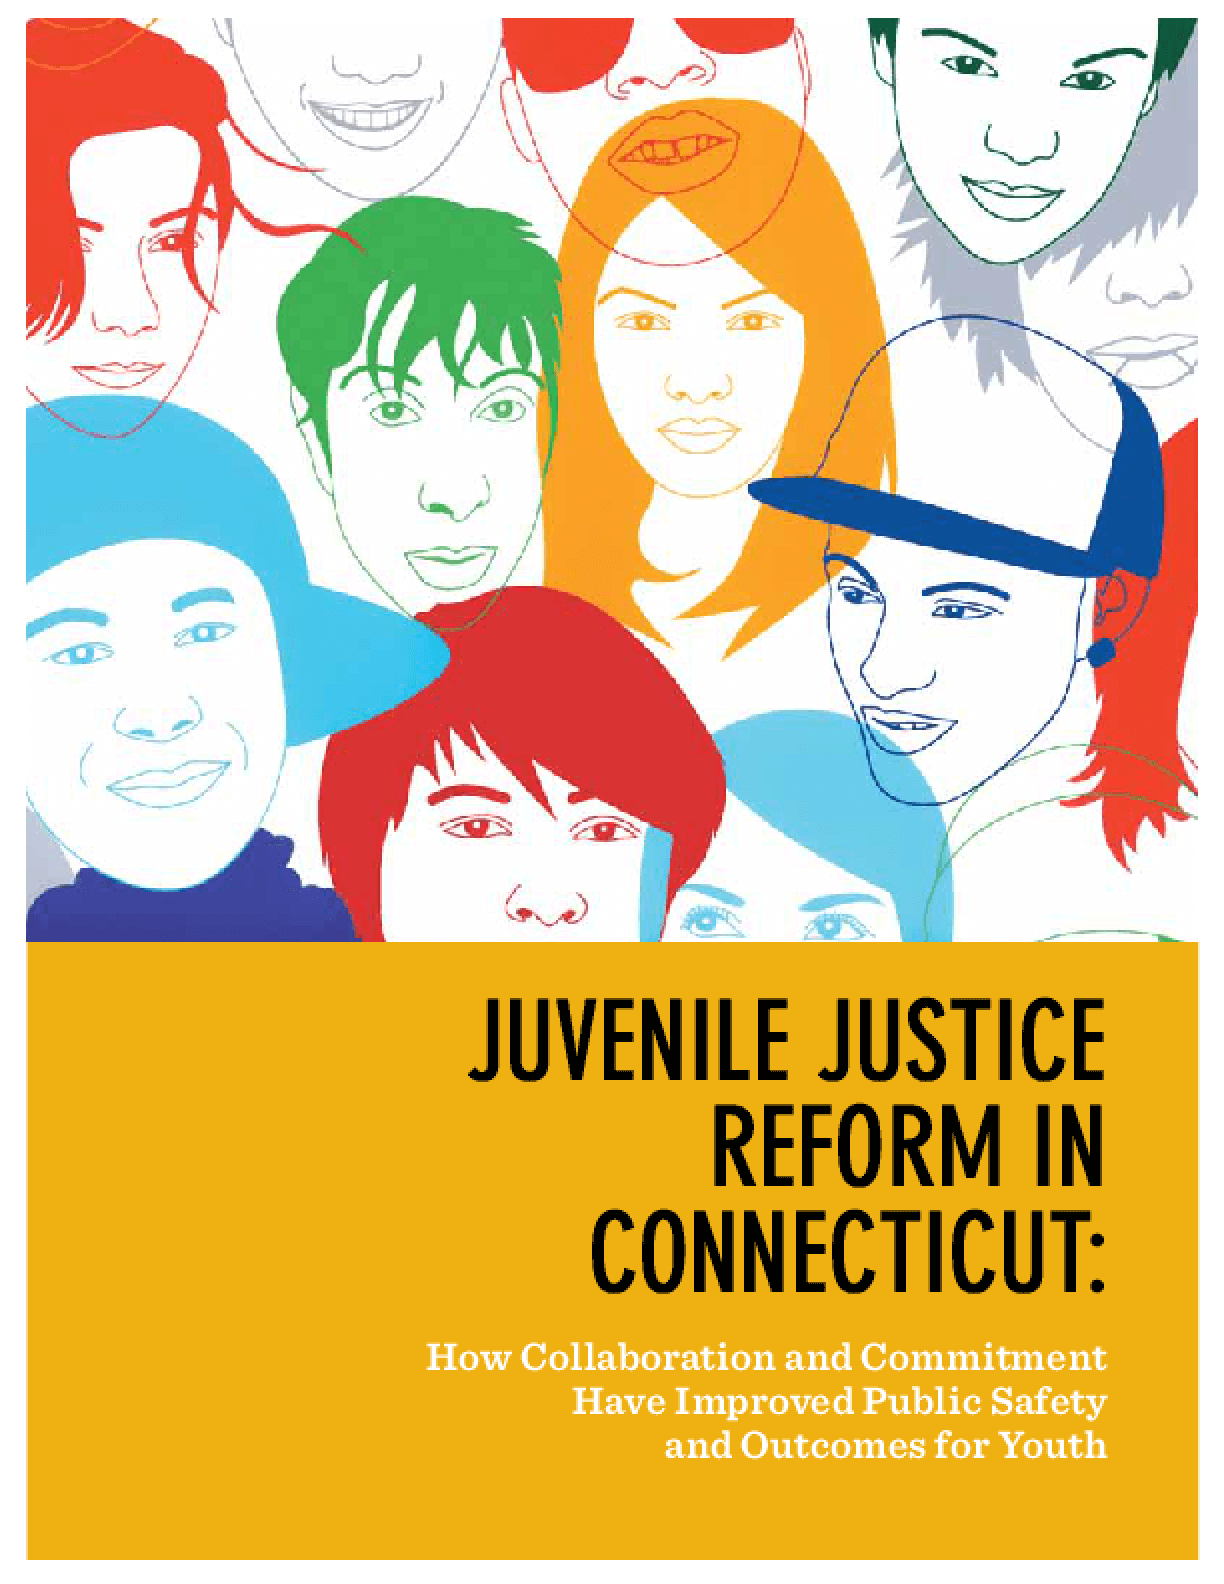 Juvenile Justice Reform In Connecticut: How Collaboration and Commitment Have Improved Public Safety and Outcomes for Youth